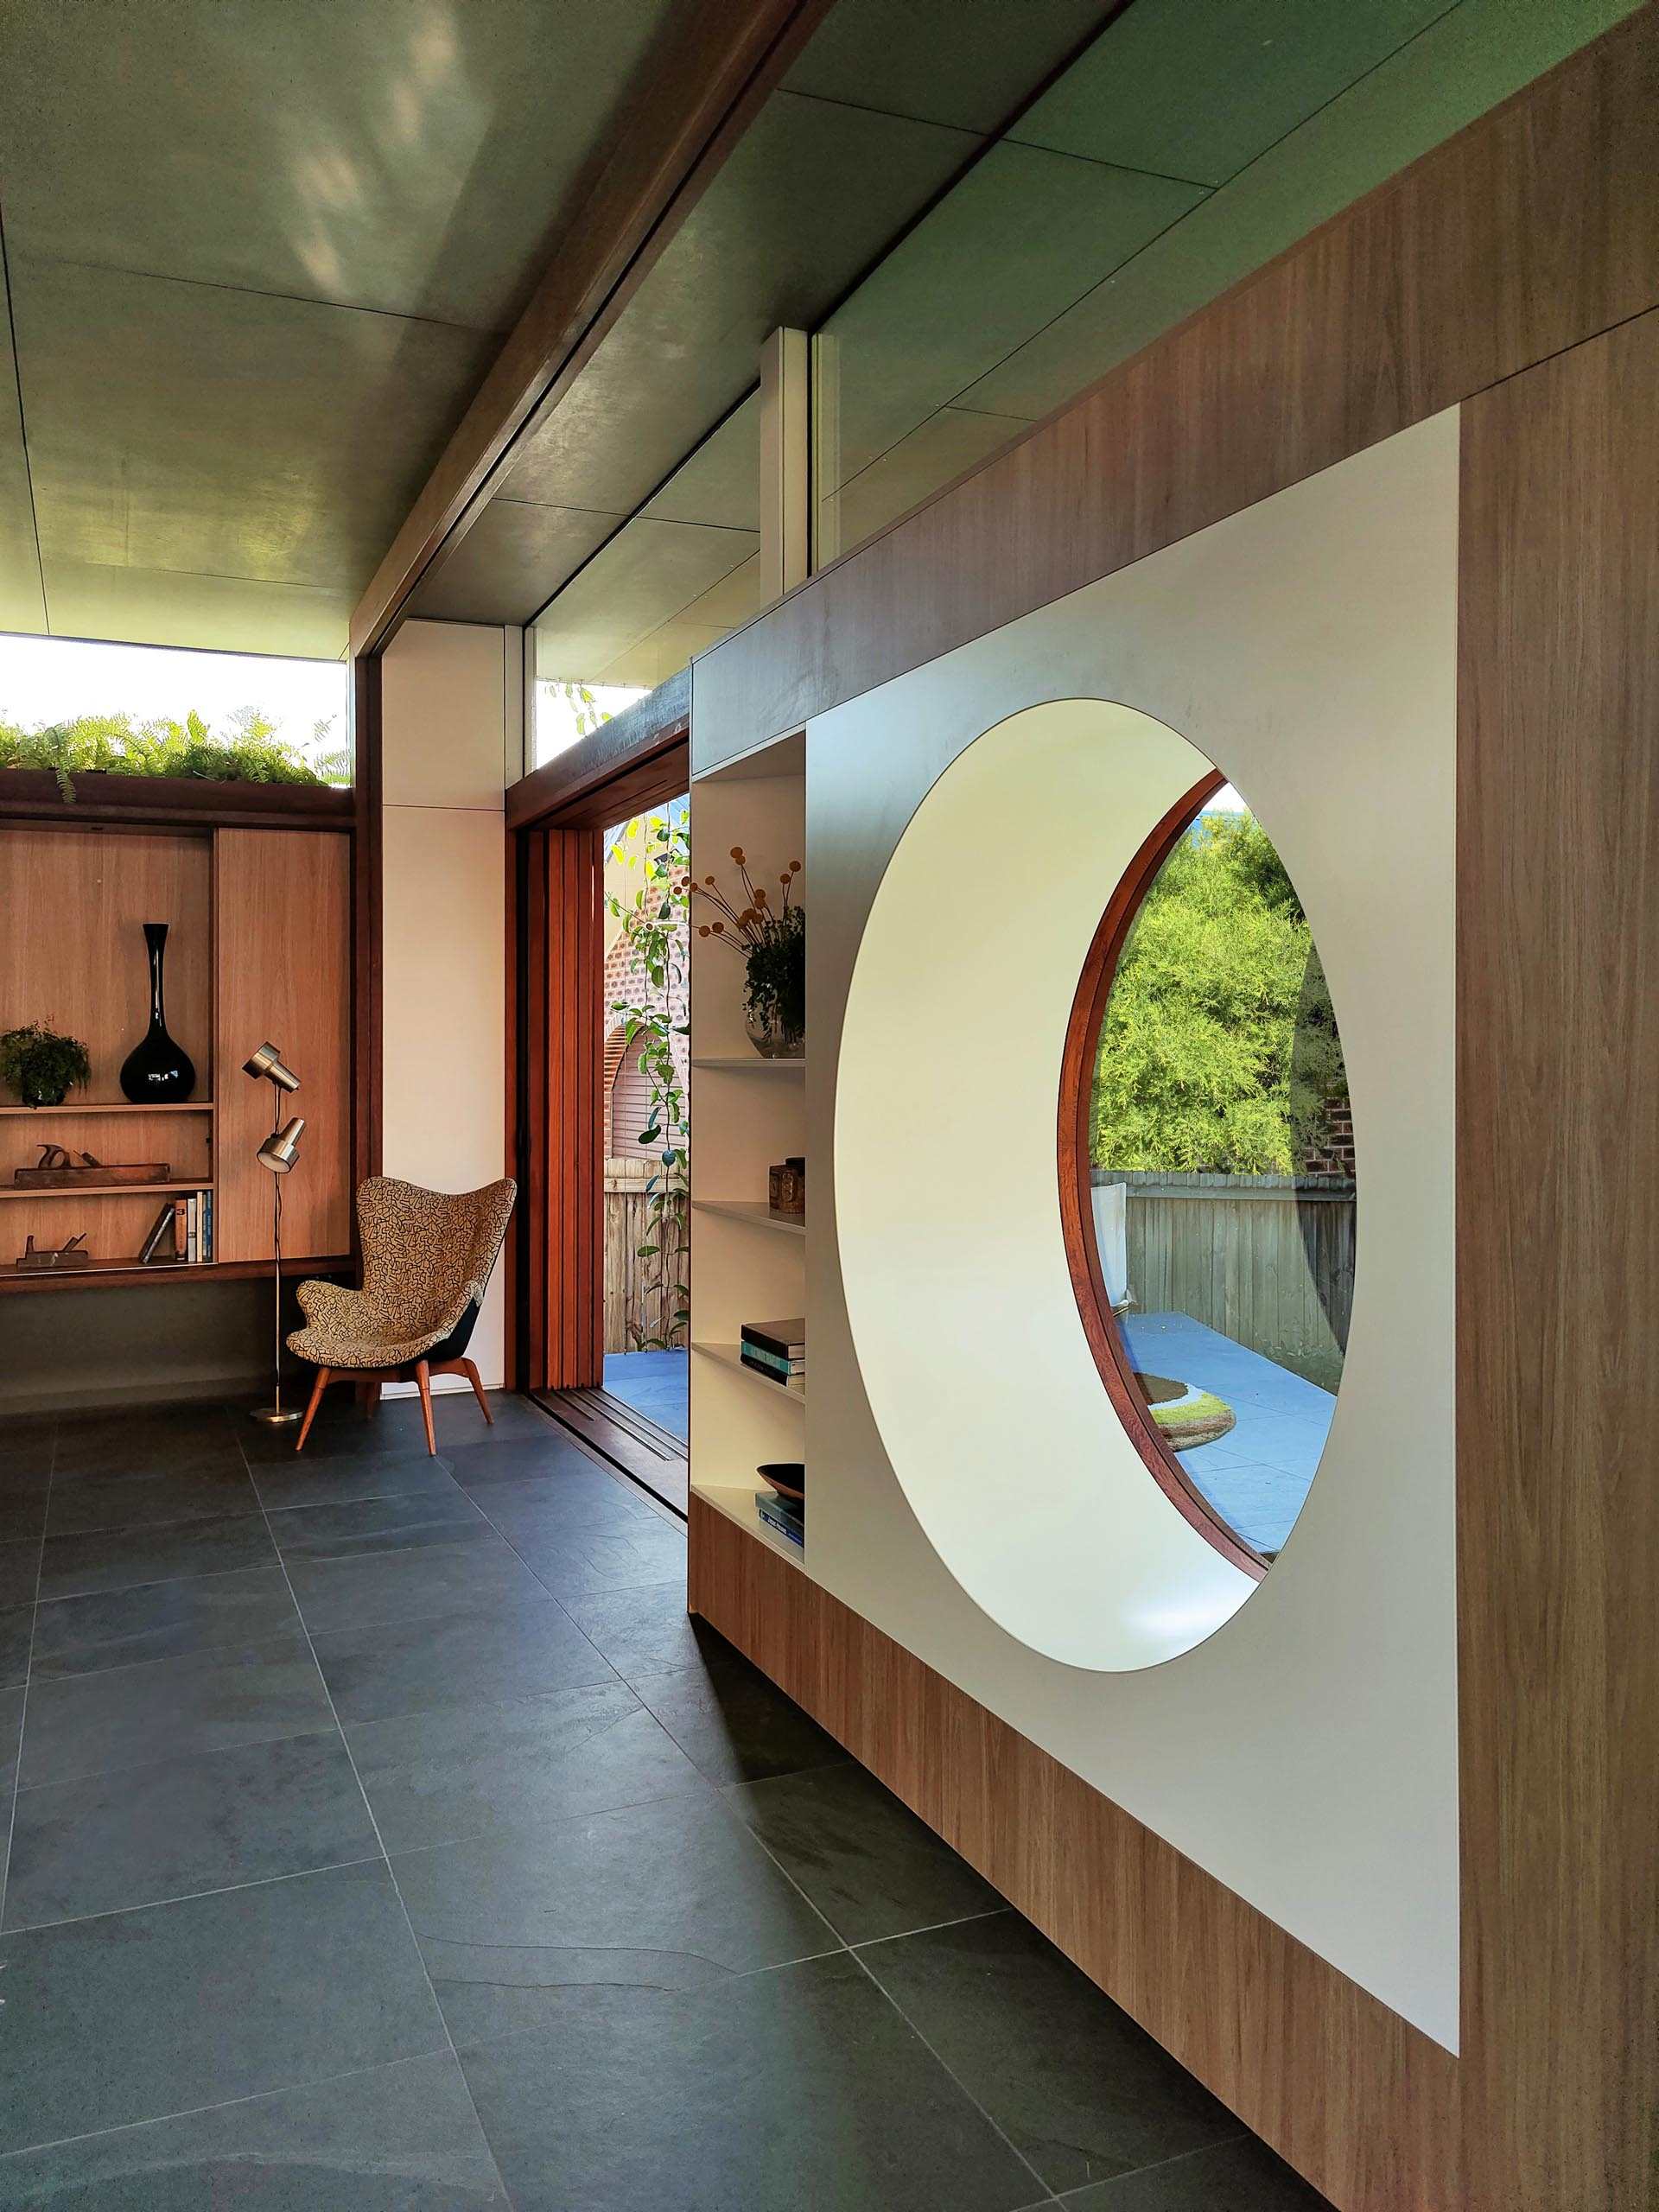 A modern living room with a circular window.